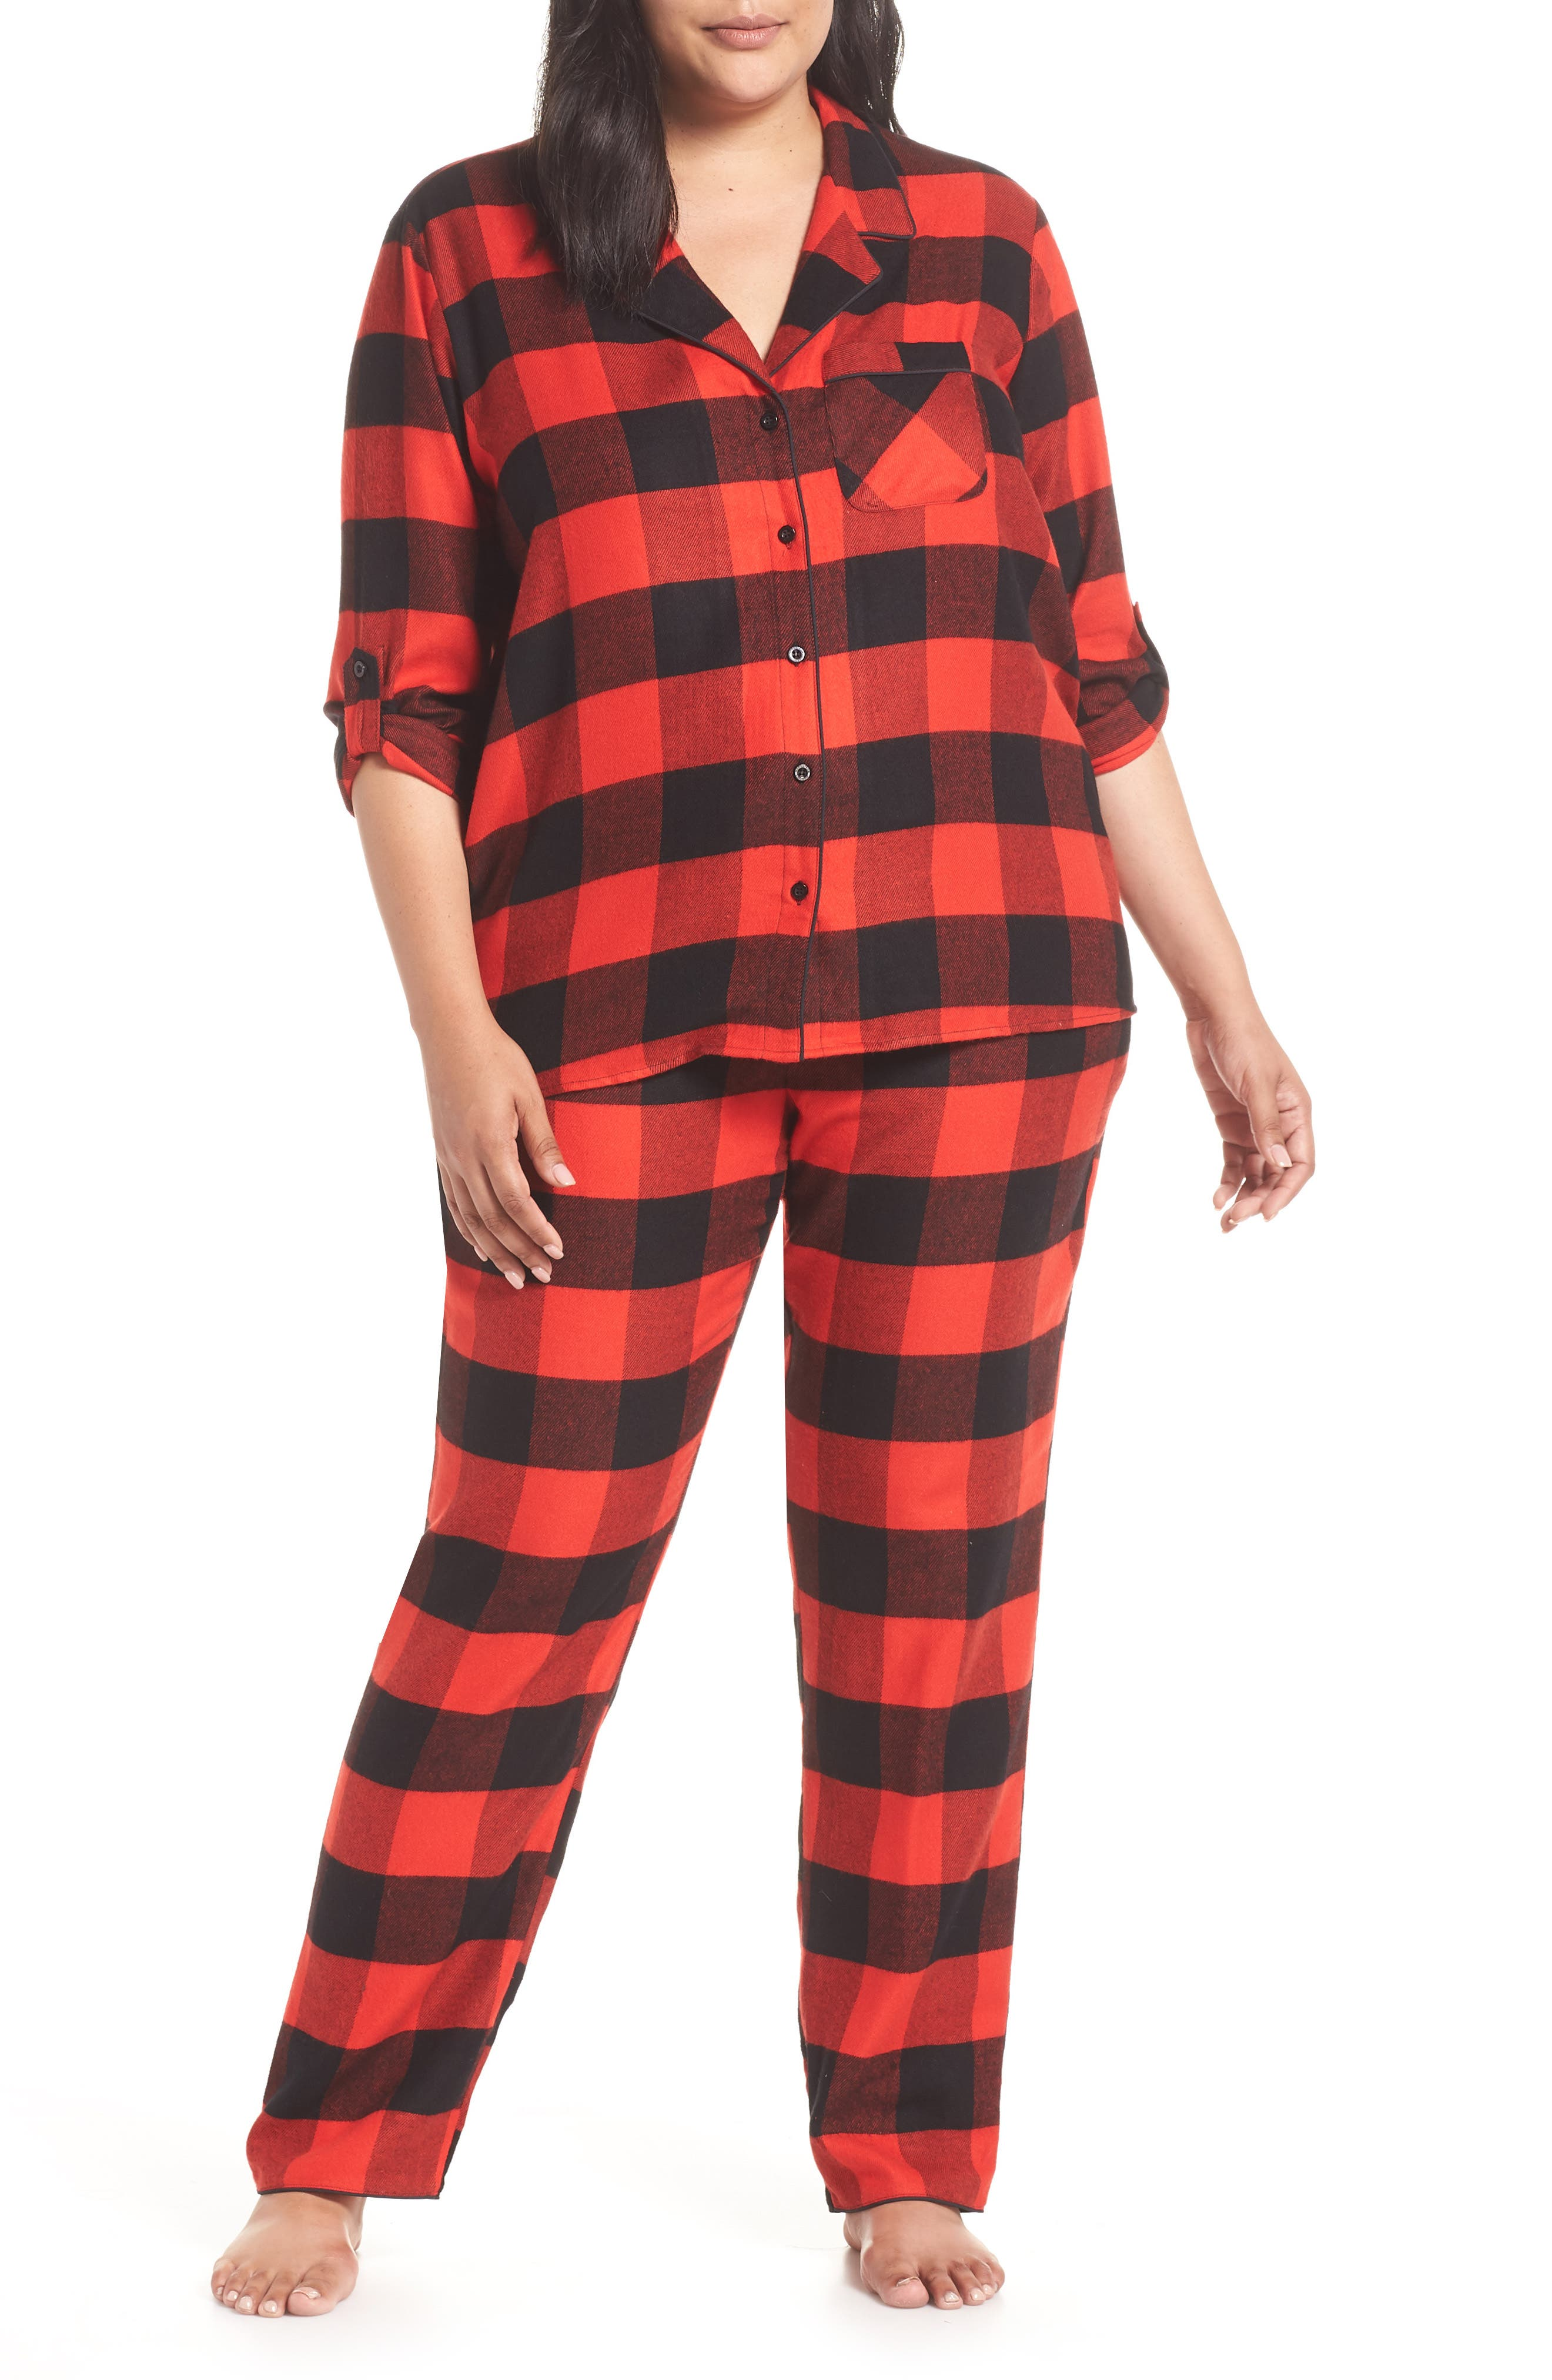 Starlight Plaid Flannel Pajamas,                         Main,                         color, RED BLOOM LARGE BUFFALO CHECK